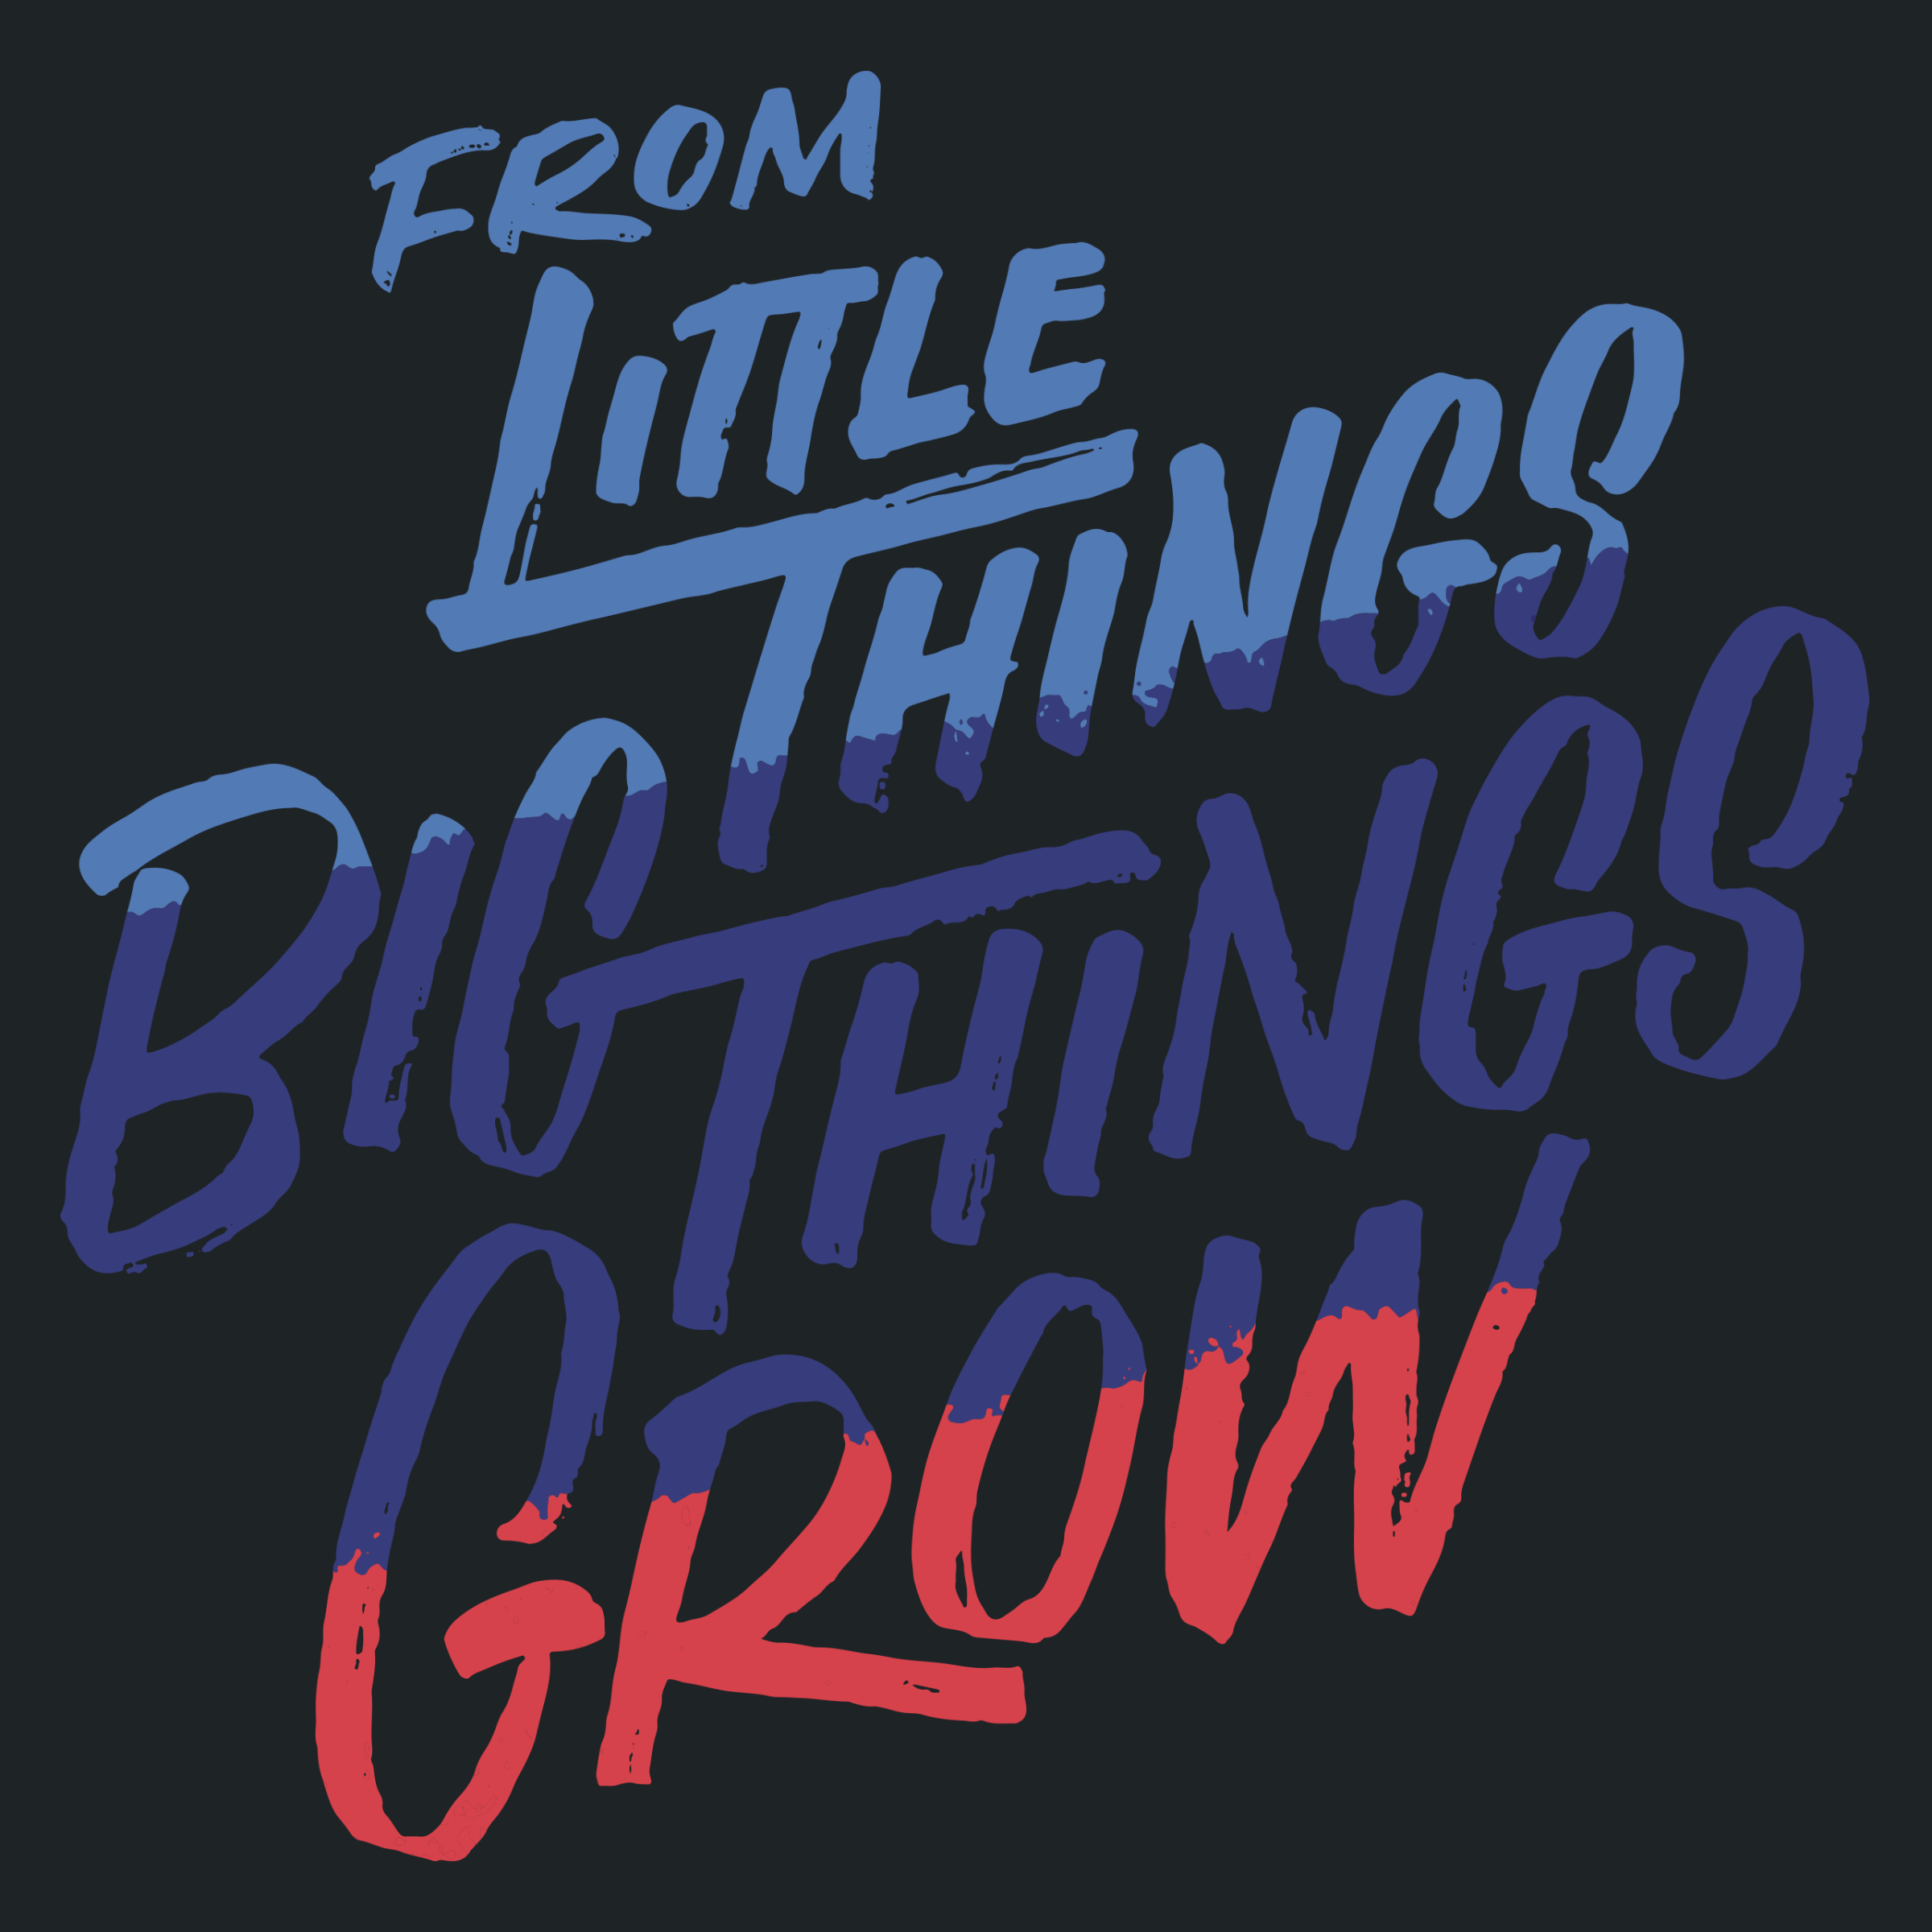 From Little Things Big Things Grow Detail